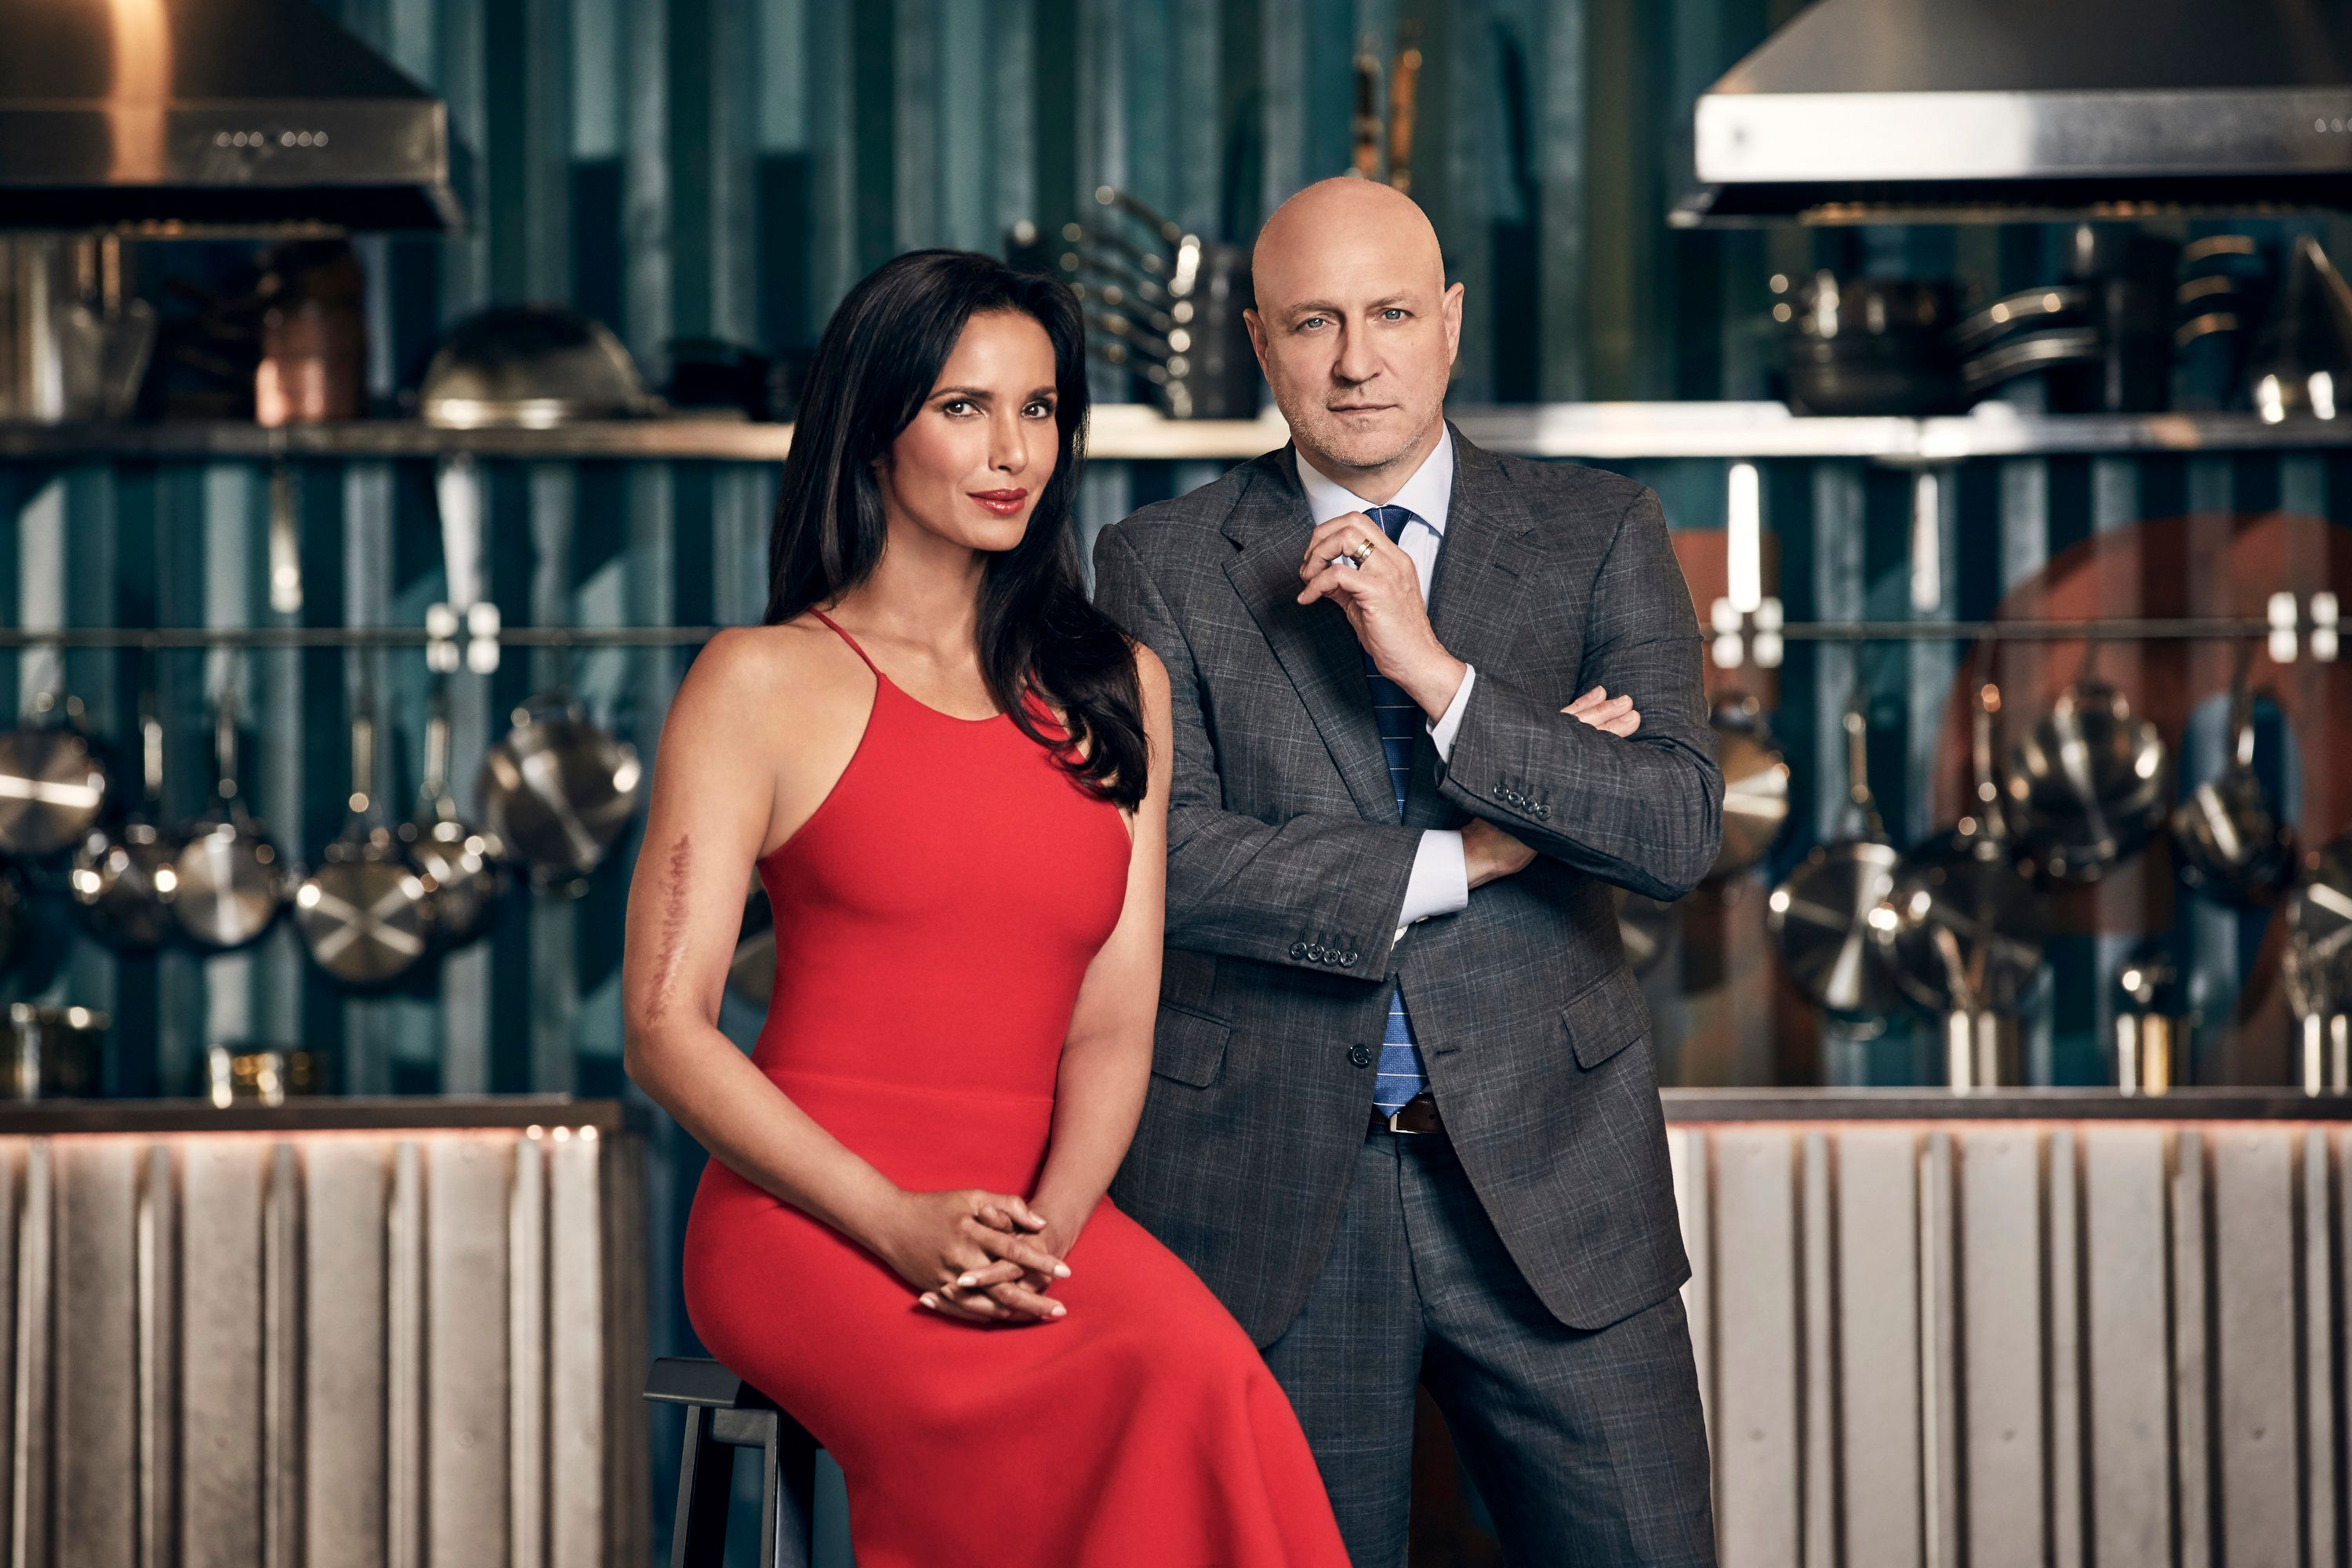 TOP CHEF -- Season:15 -- Pictured: (l-r) Padma Lakshmi, Tom Colicchio -- (Photo by: Tommy Garcia/Bravo/NBCU Photo Bank via Getty Images)